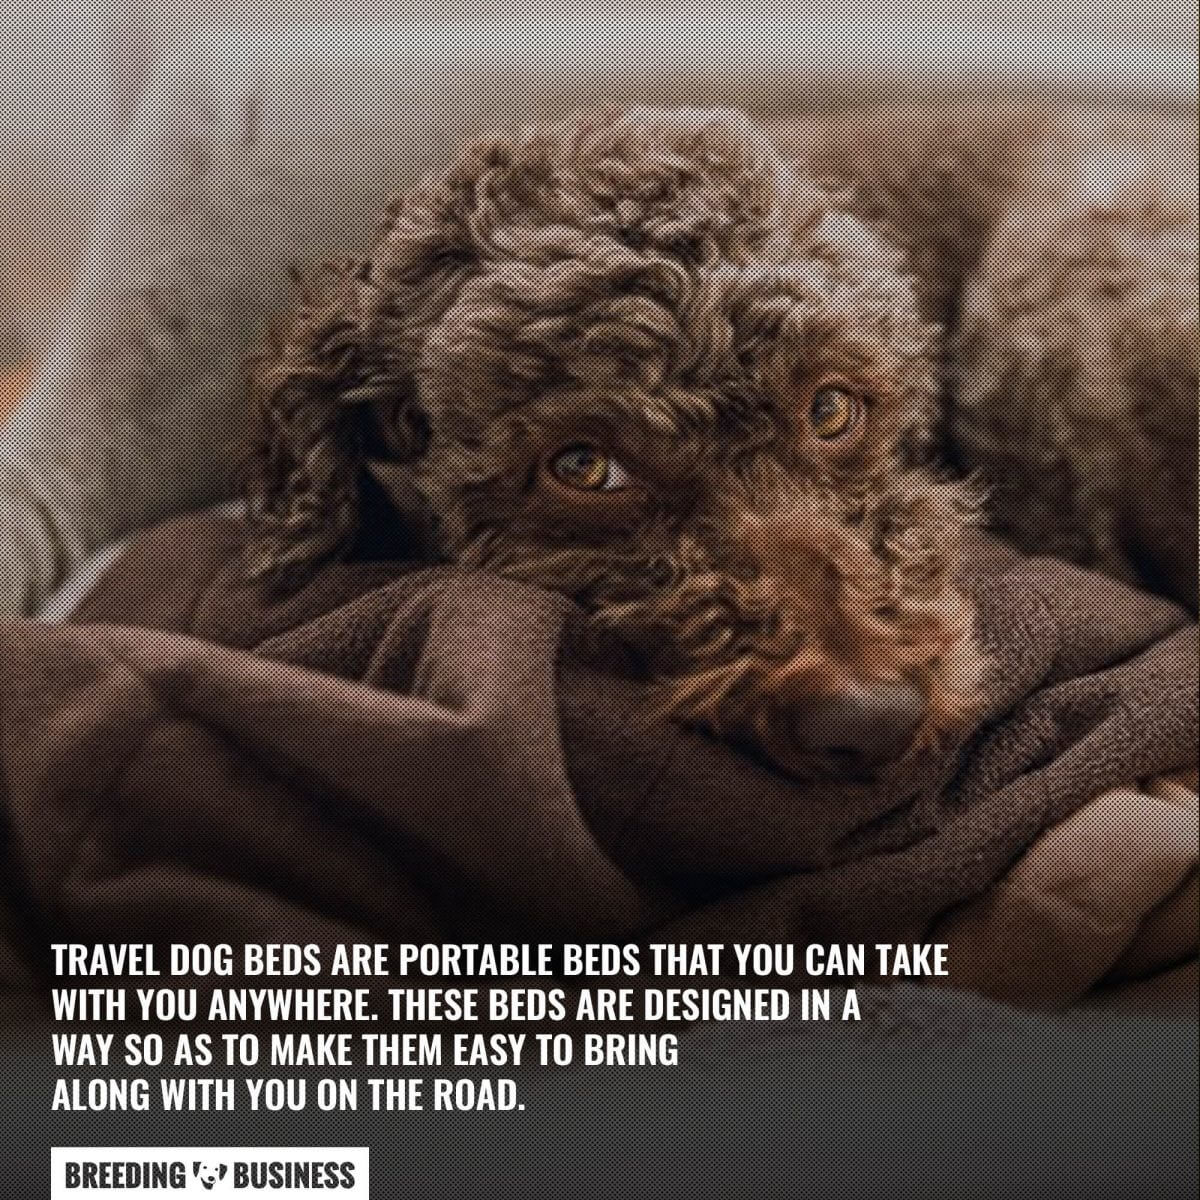 portability of travel dog beds